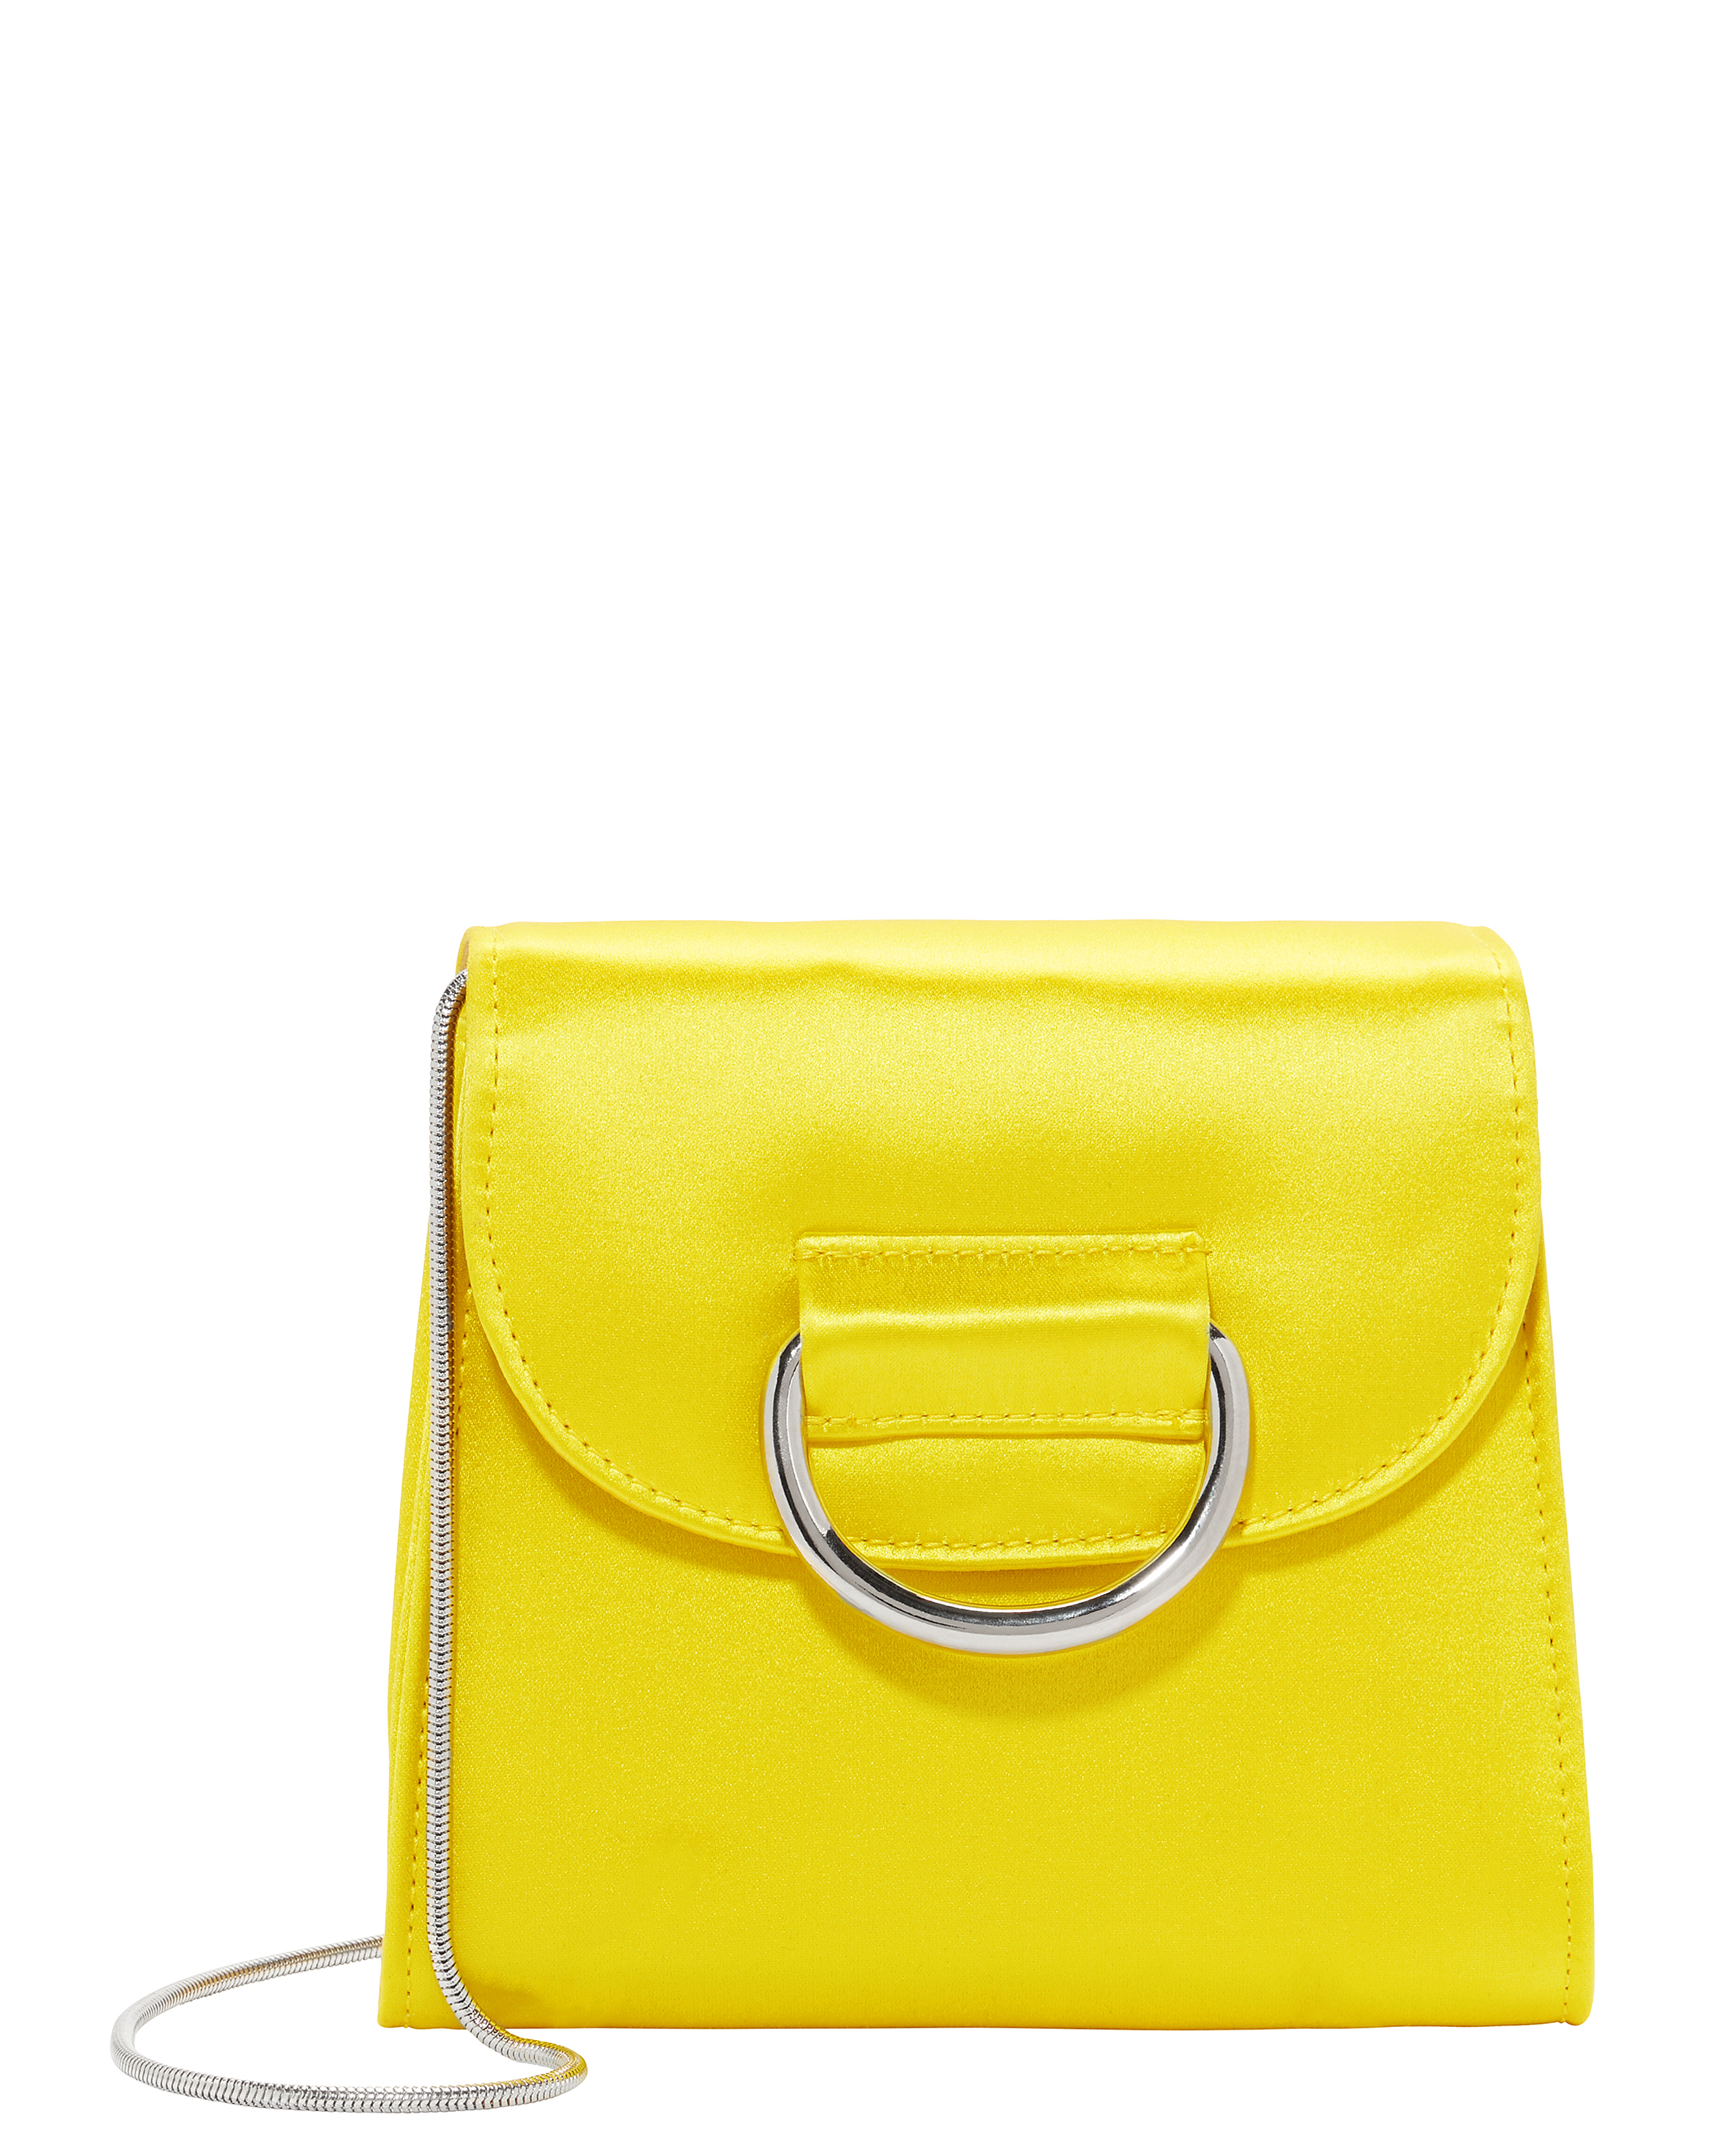 Tiny Box Satin Yellow Bag